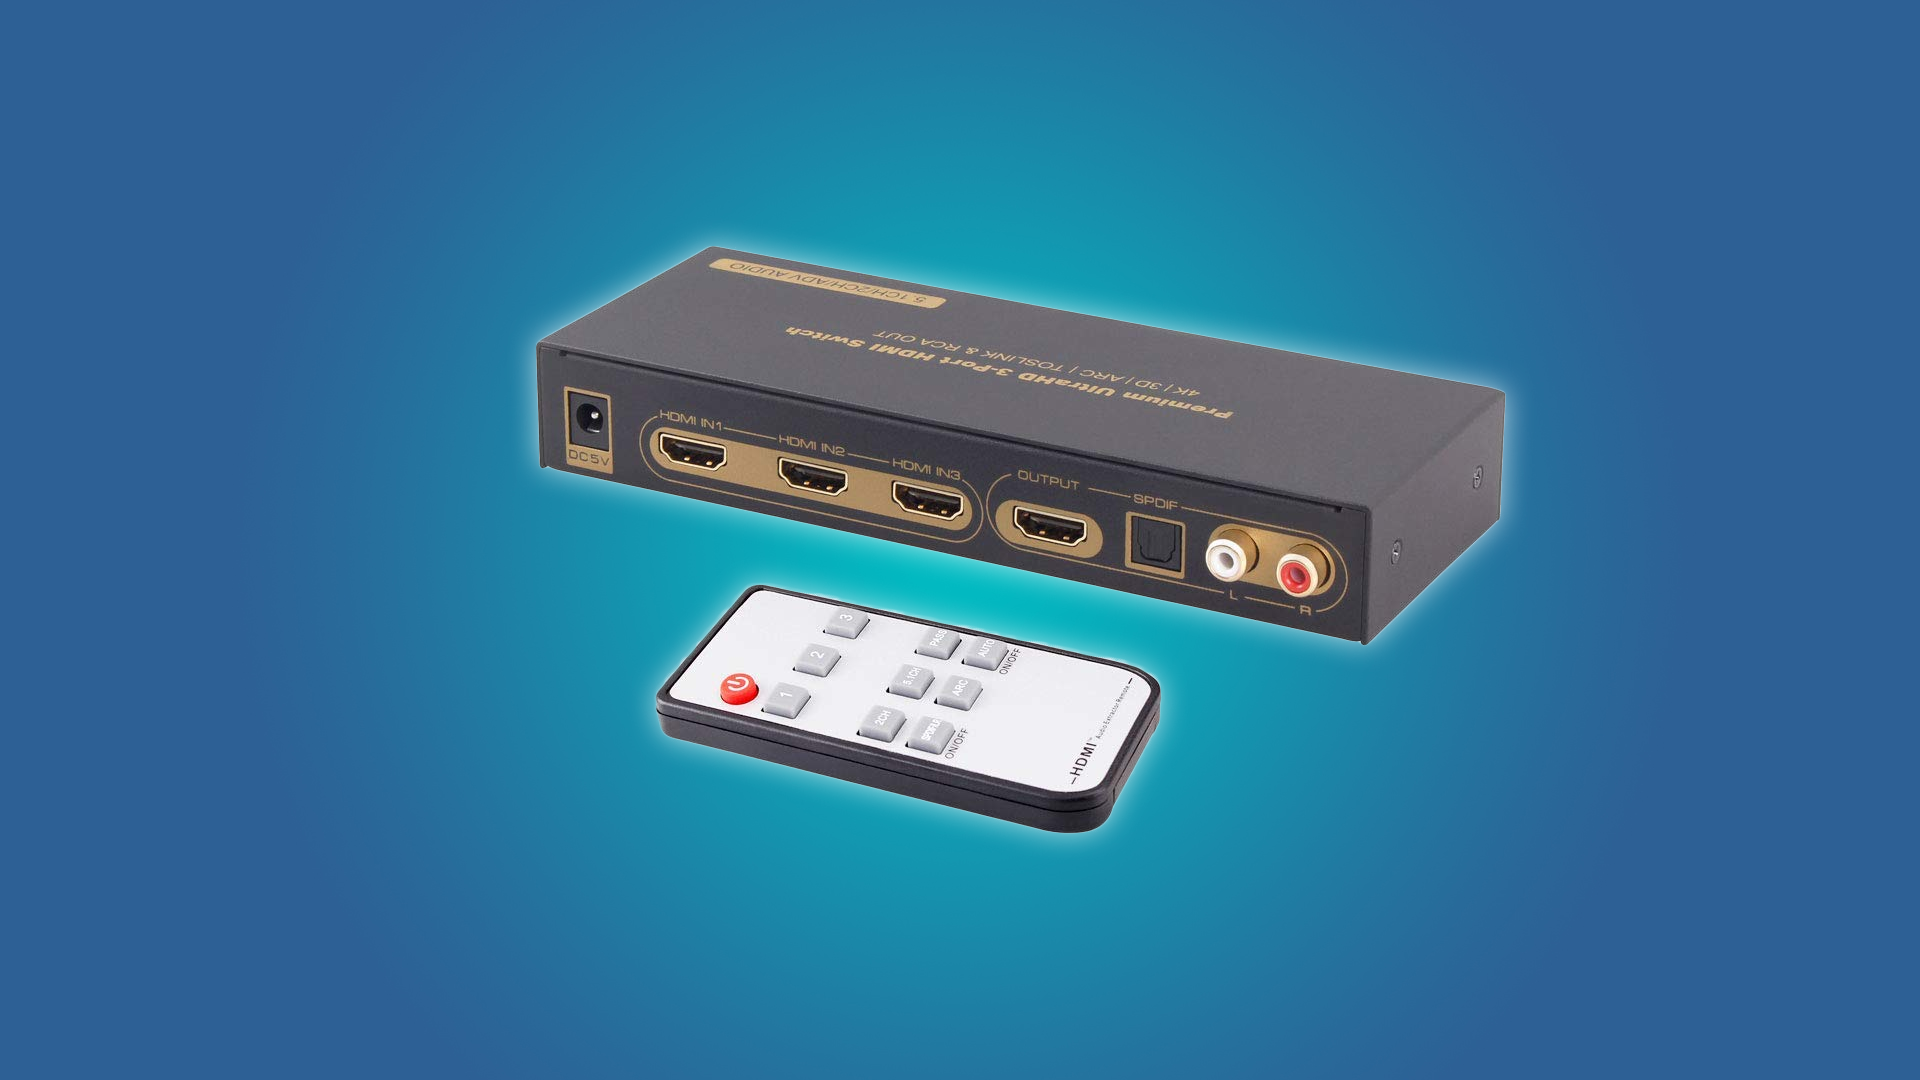 Add more hdmi ports to your tv with these switches hackers - How to add more hdmi ports to your tv ...